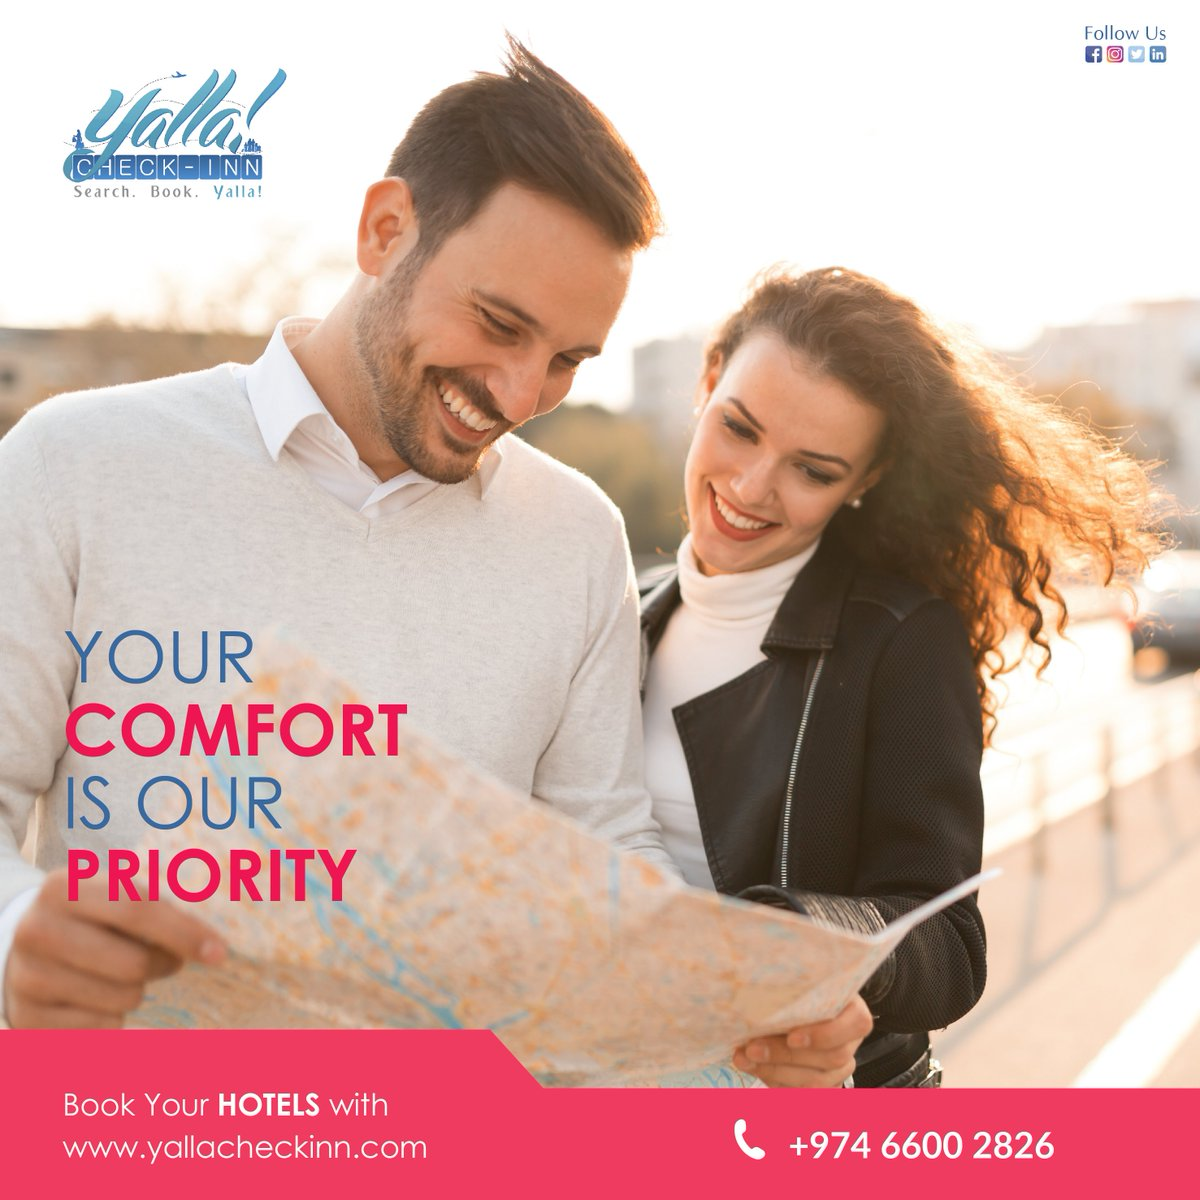 Your #Luxury is Our #Priority   Book #HOTELS with  https://t.co/baScaL4E94 https://t.co/cKFHCHyJG1